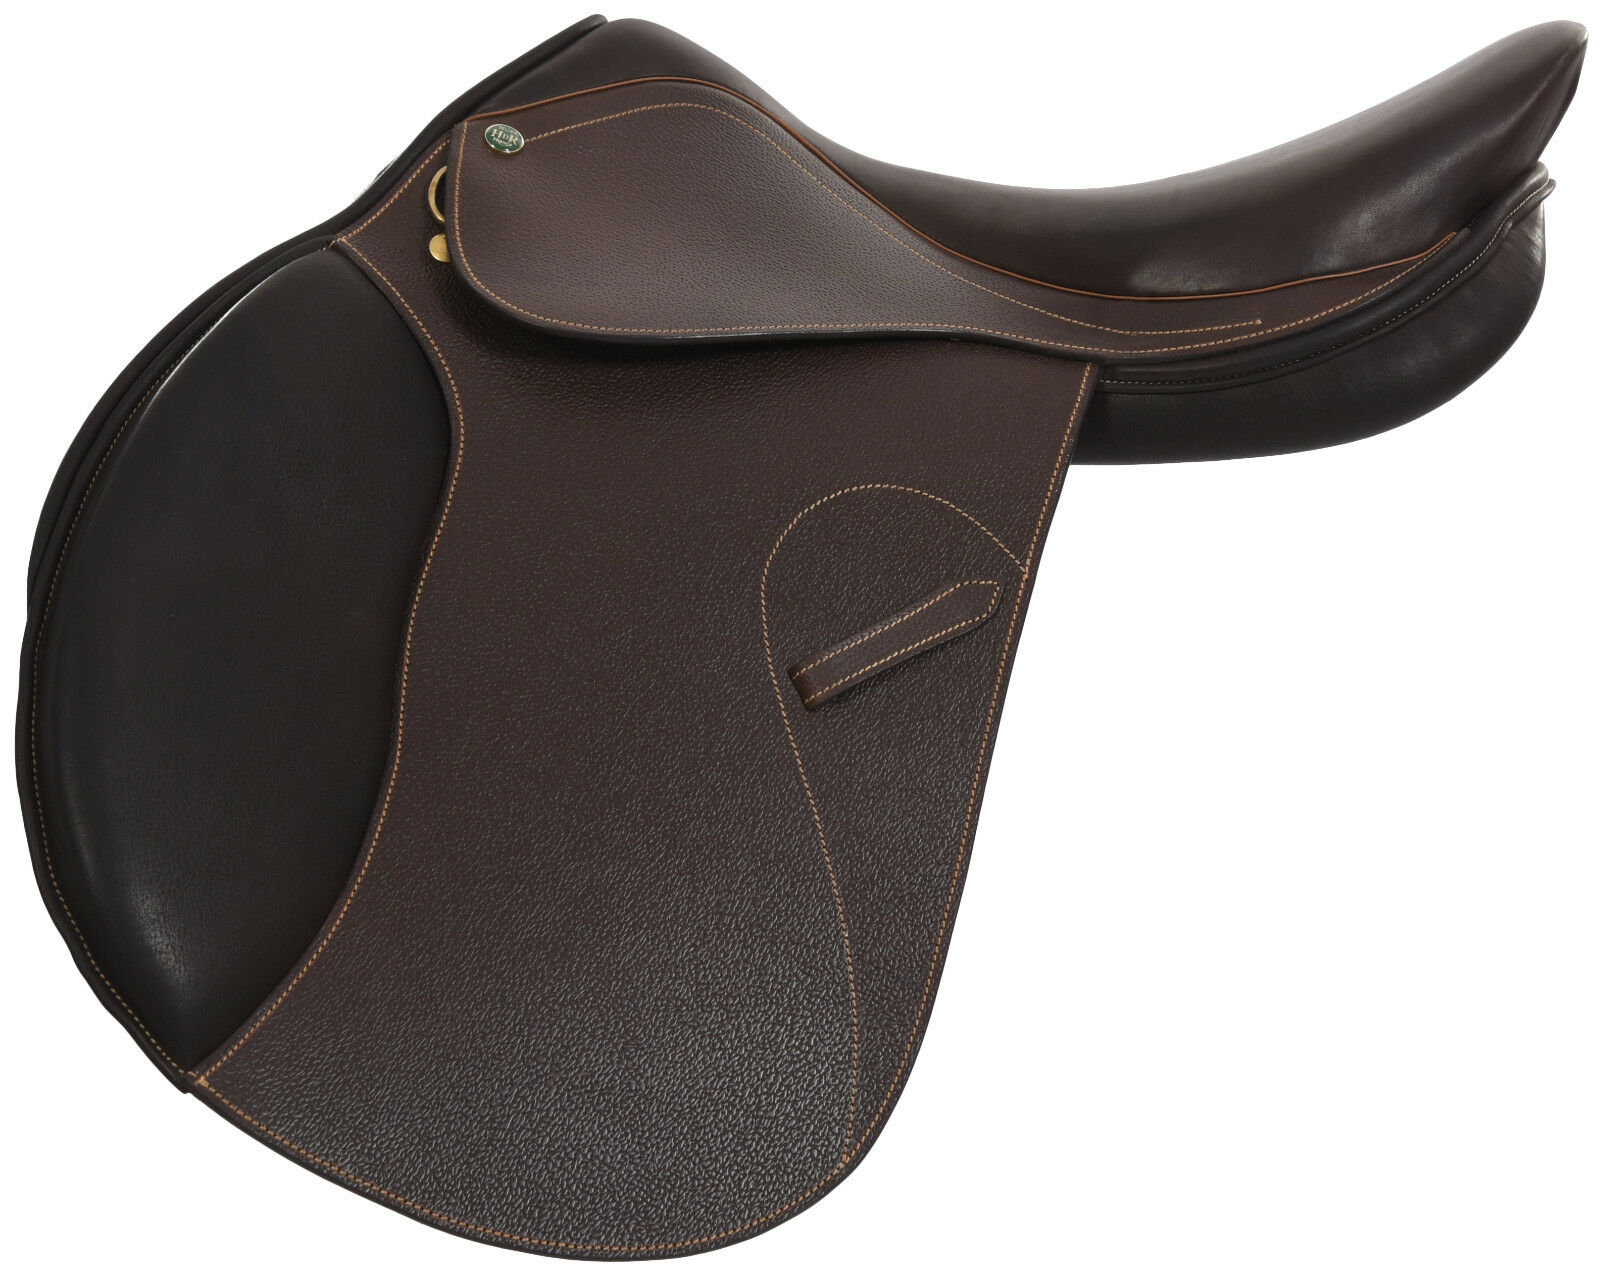 HDR MemorX Close Contact Saddle  Aust Nut 18.0 Med Tree